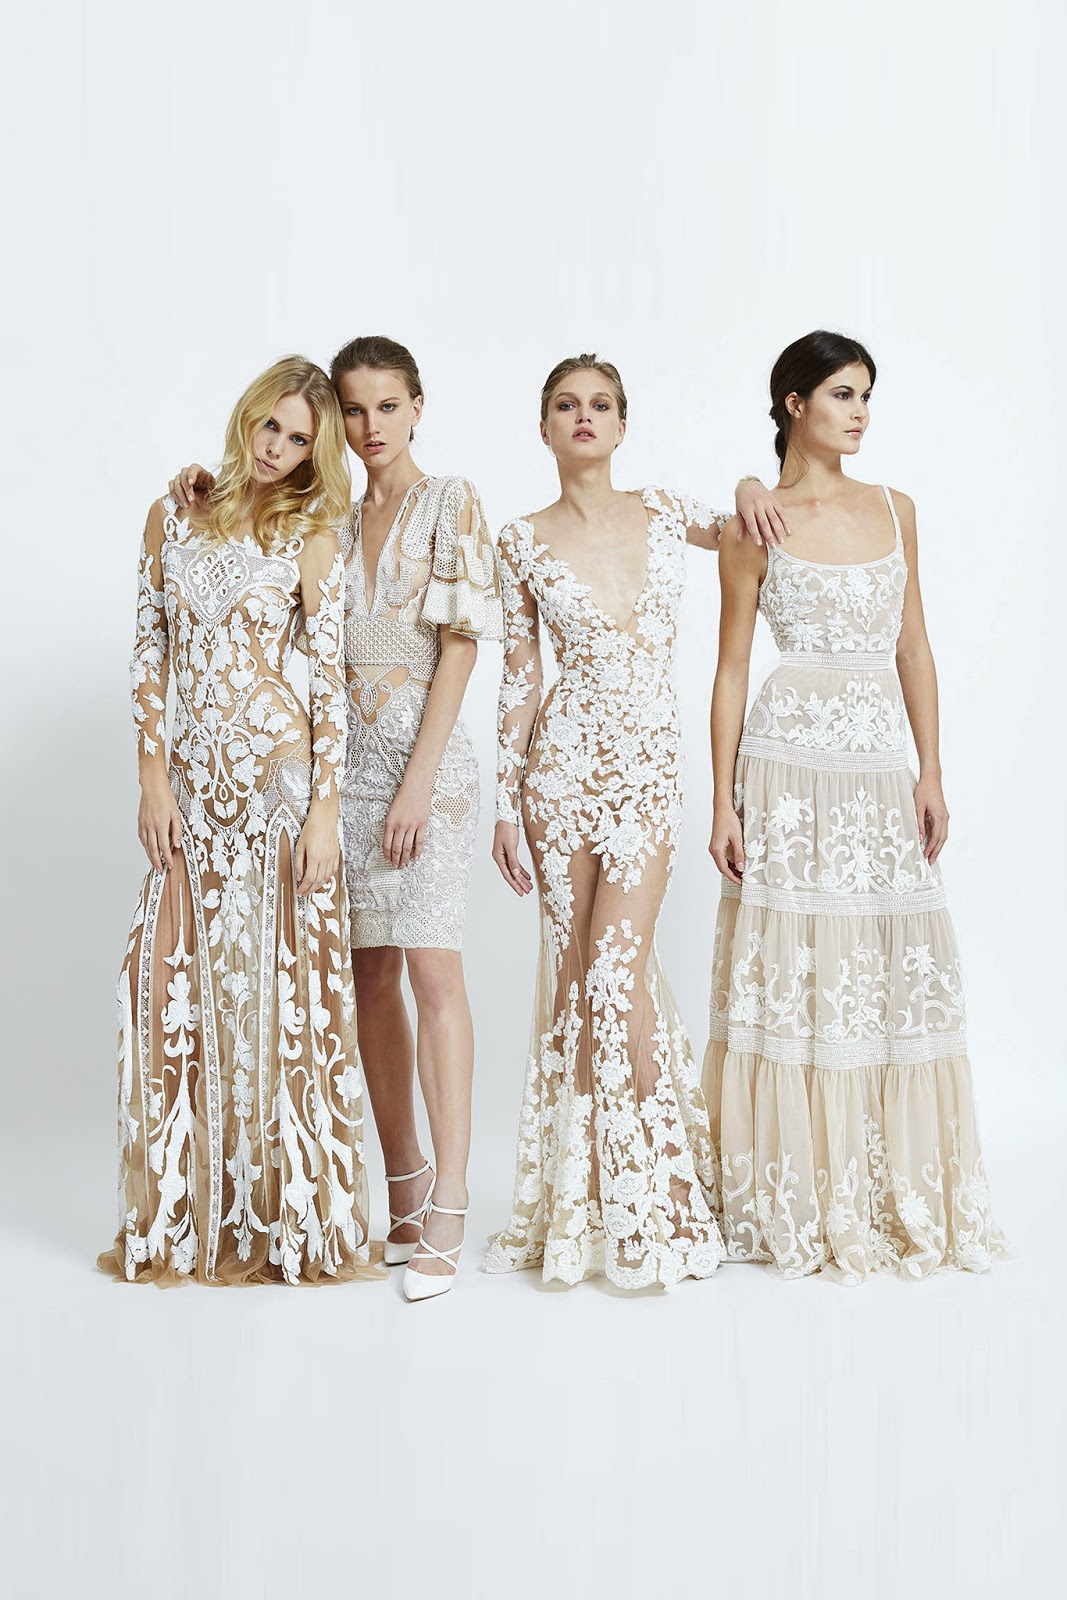 Zuhair Murad Spring 2015 Ready-to-Wear - Cool Chic Style Fashion